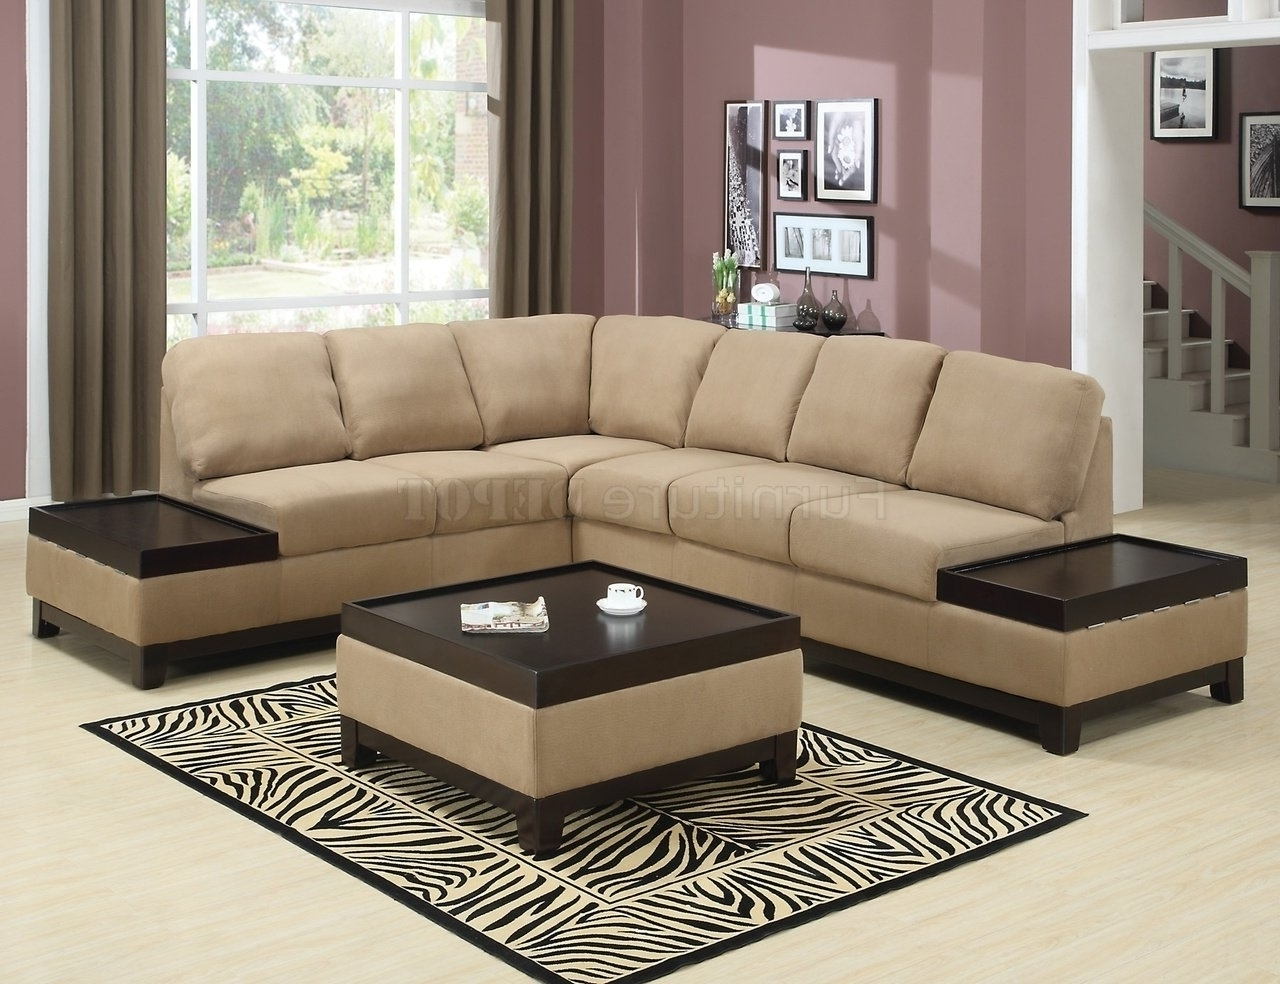 leather sofas tulsa best sofa brand reviews 10 inspirations sectional ideas